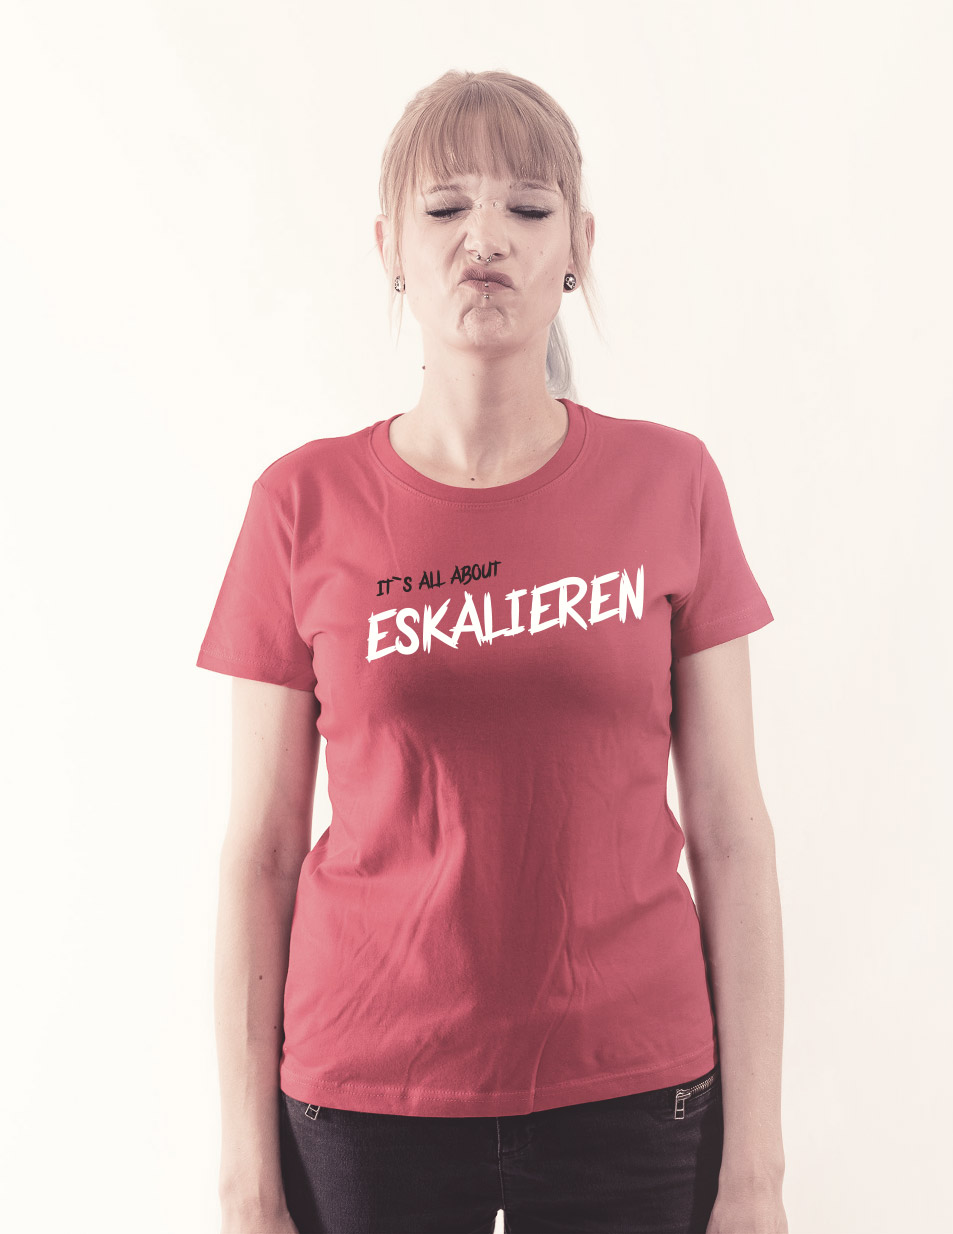 Its all about Eskalieren - Girly Shirt Pink Edition rosa